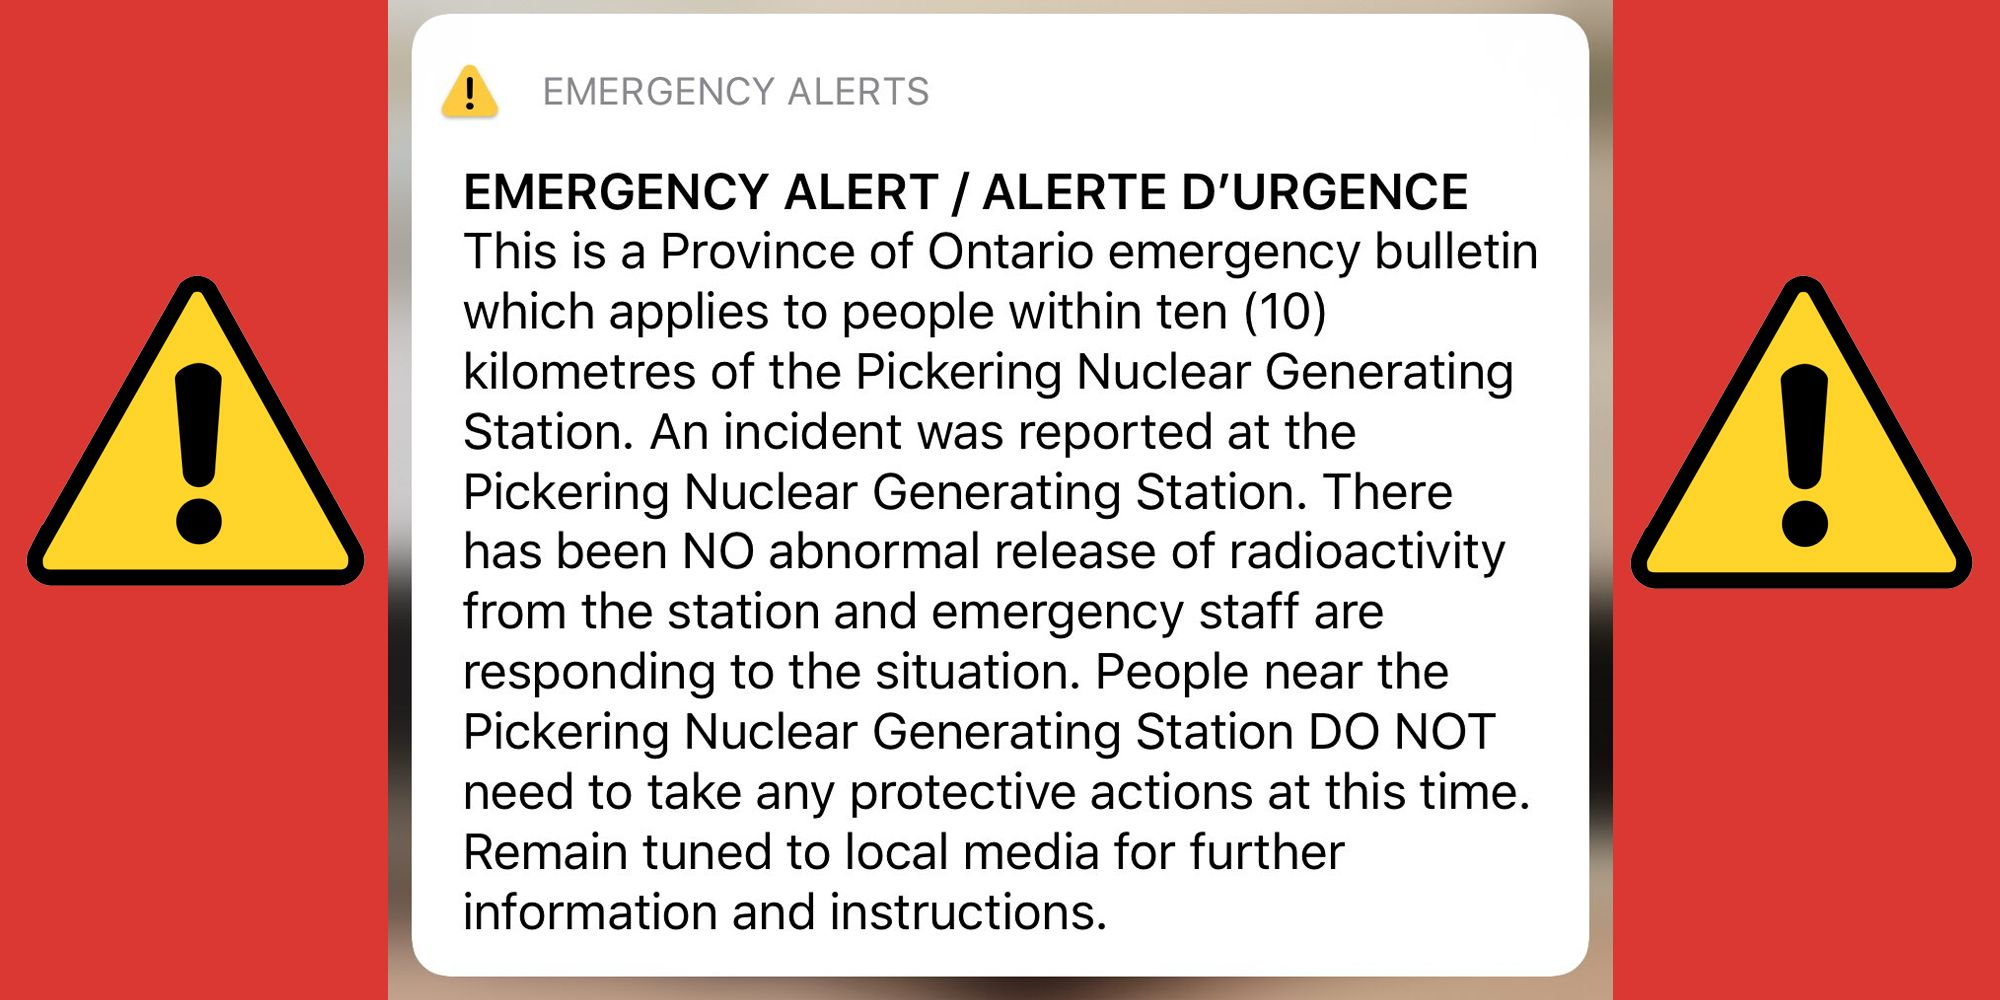 Canada Sends Nuclear Emergency Text to Millions by Mistake, Whoops